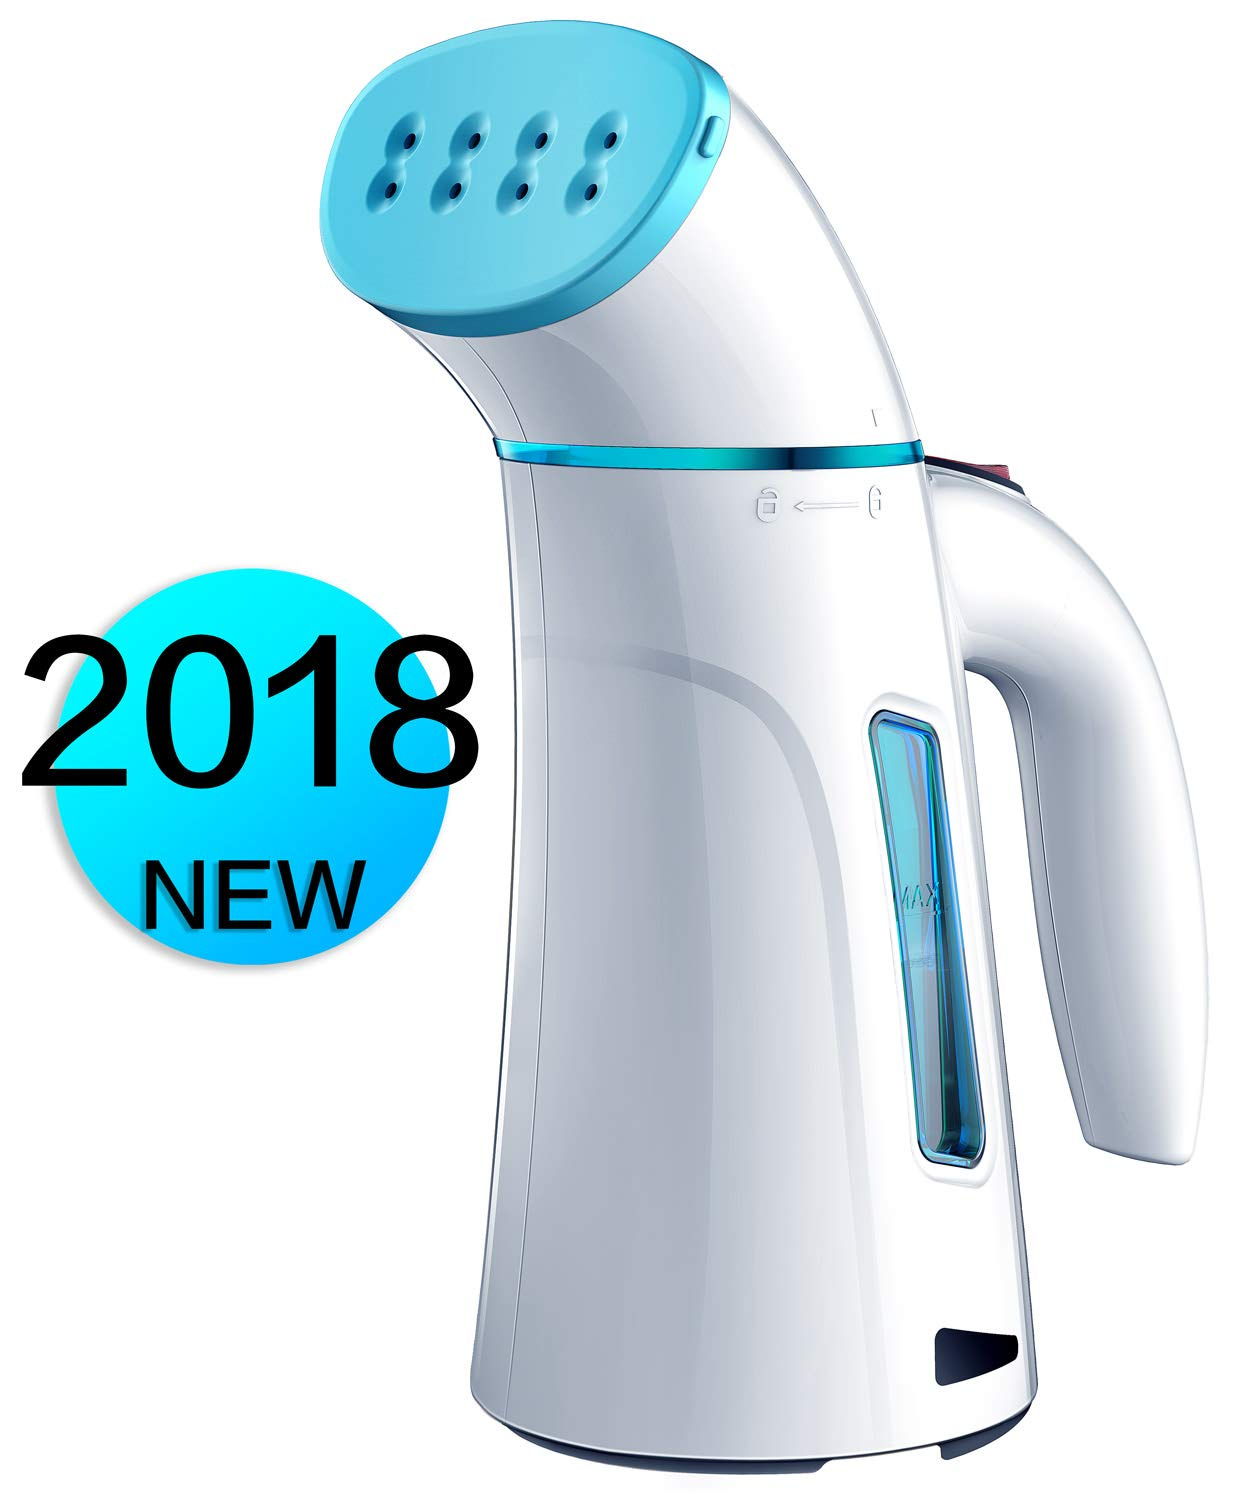 Steamer for Clothes Steamer, Handheld Garment Steamer for Clothing Steamer. Mini Travel Steamer for Portable Steam Iron Hand Held